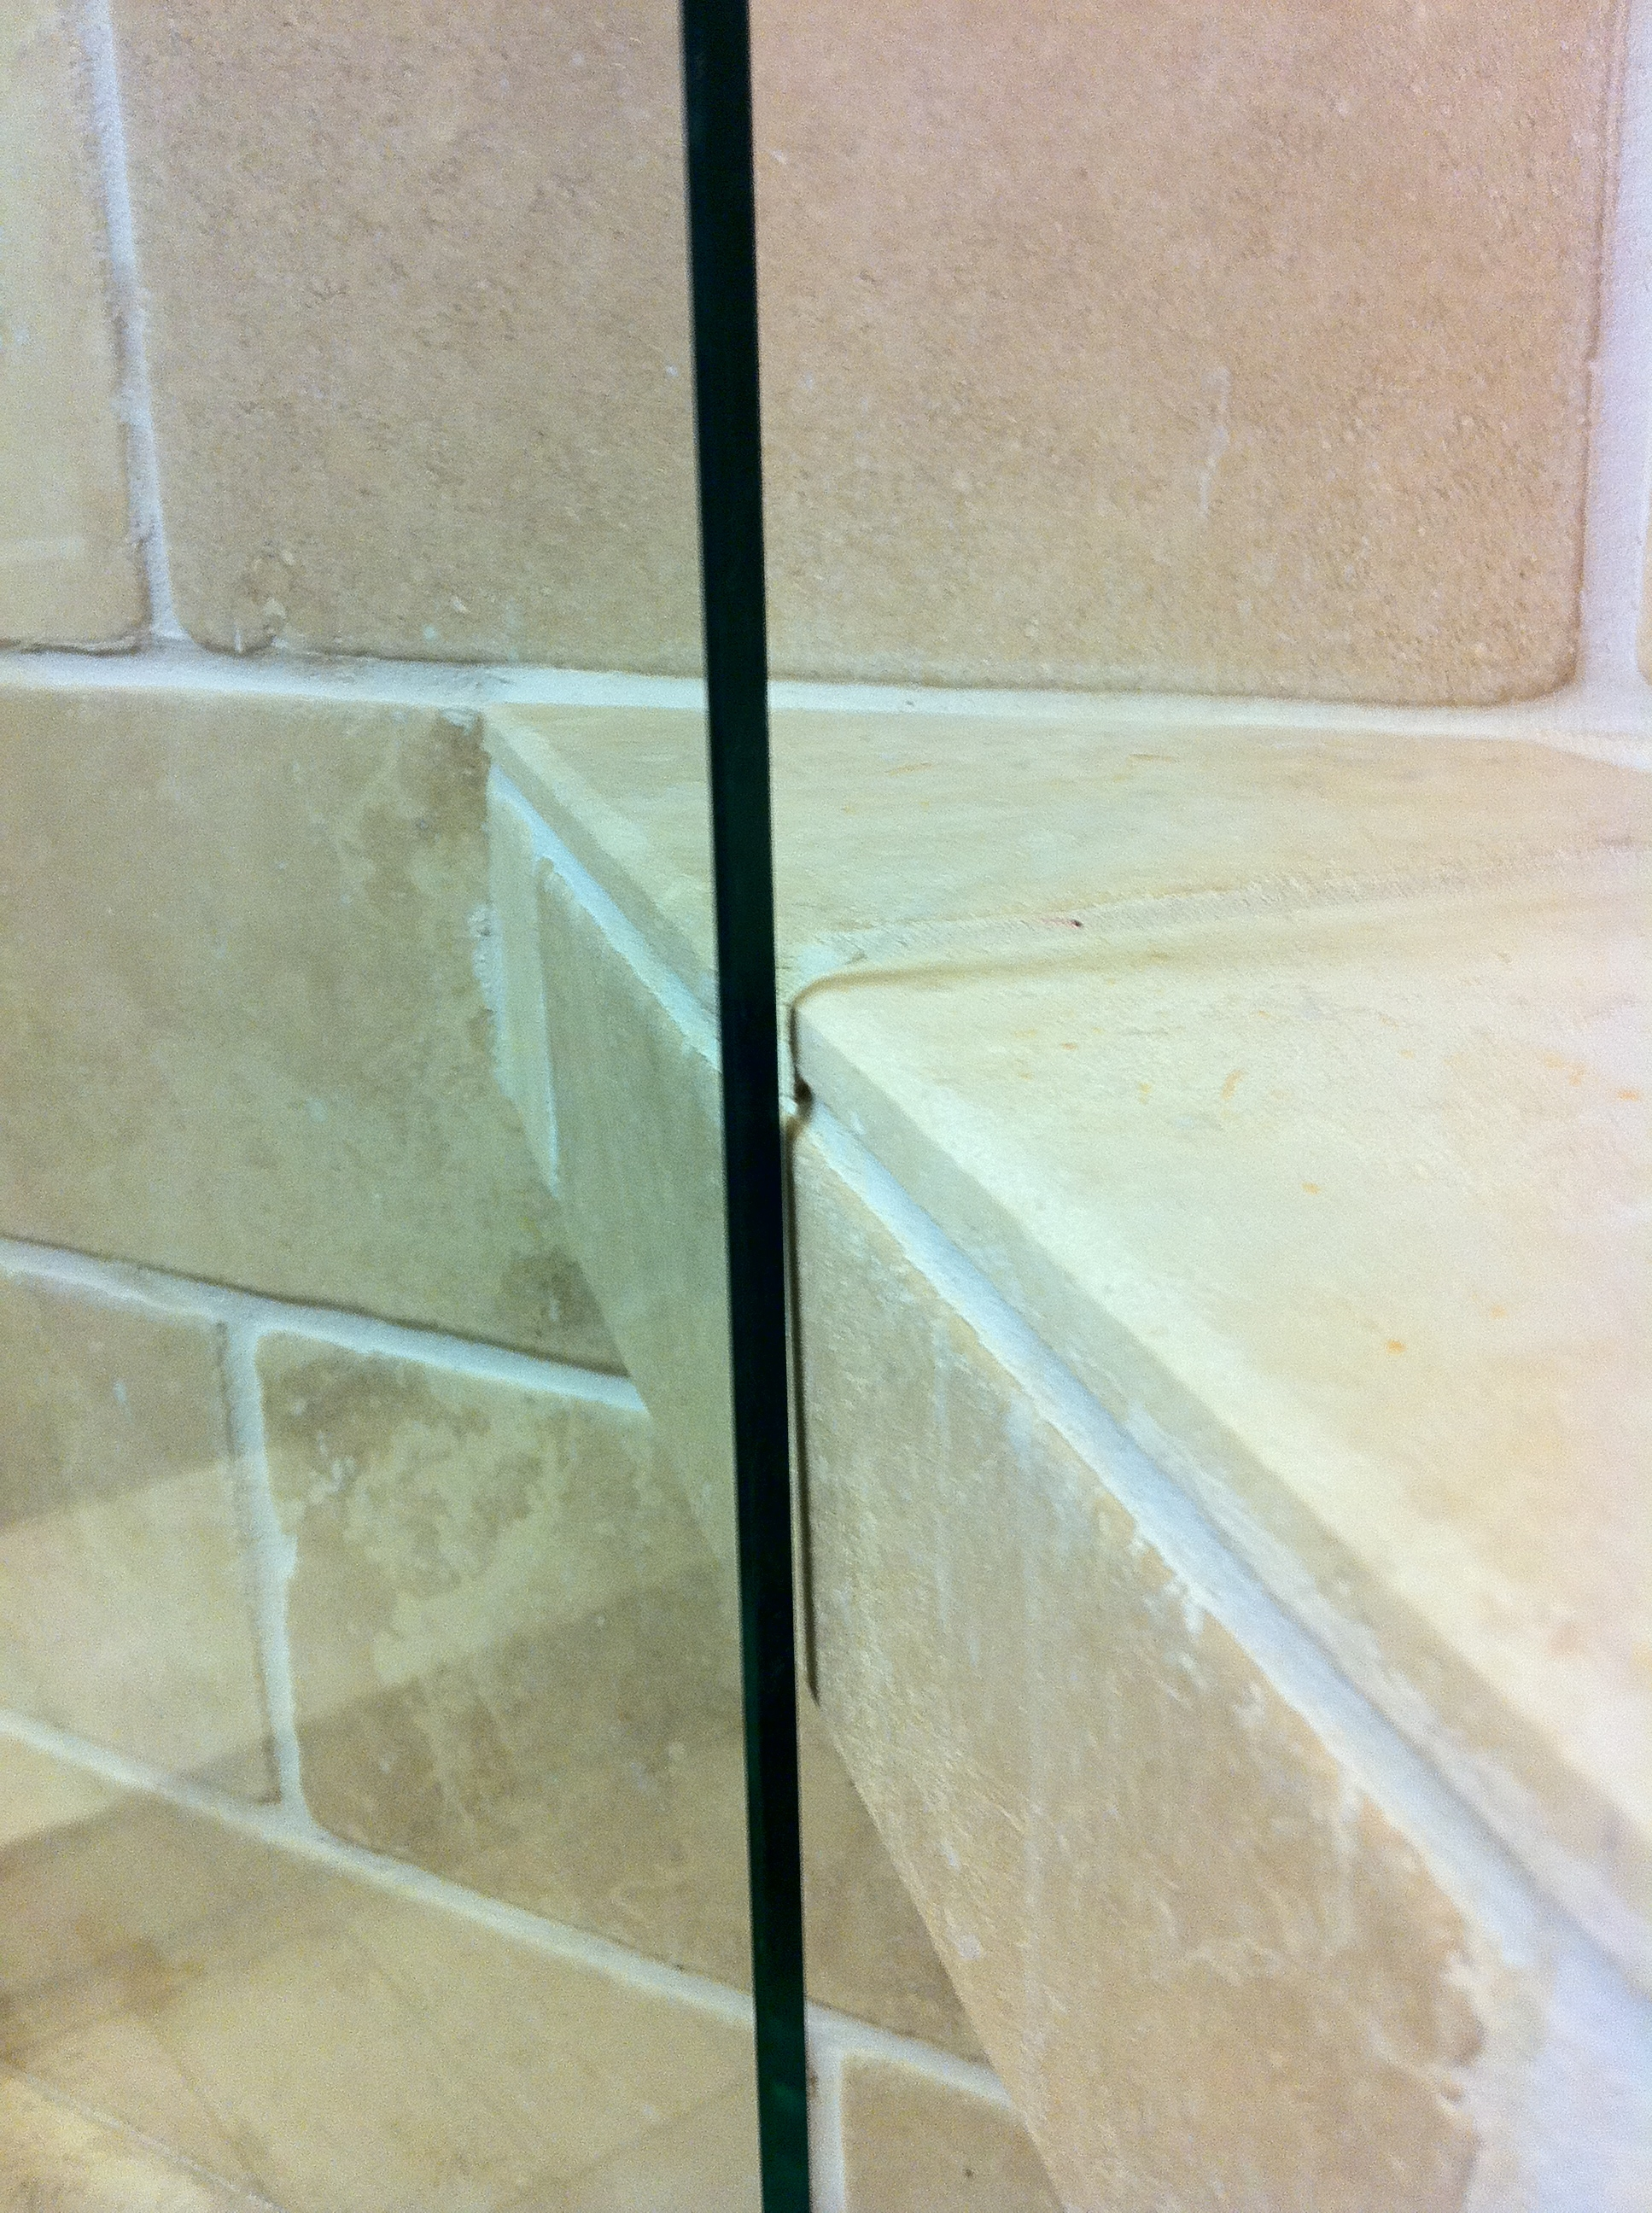 Glass Shower Door Bumper